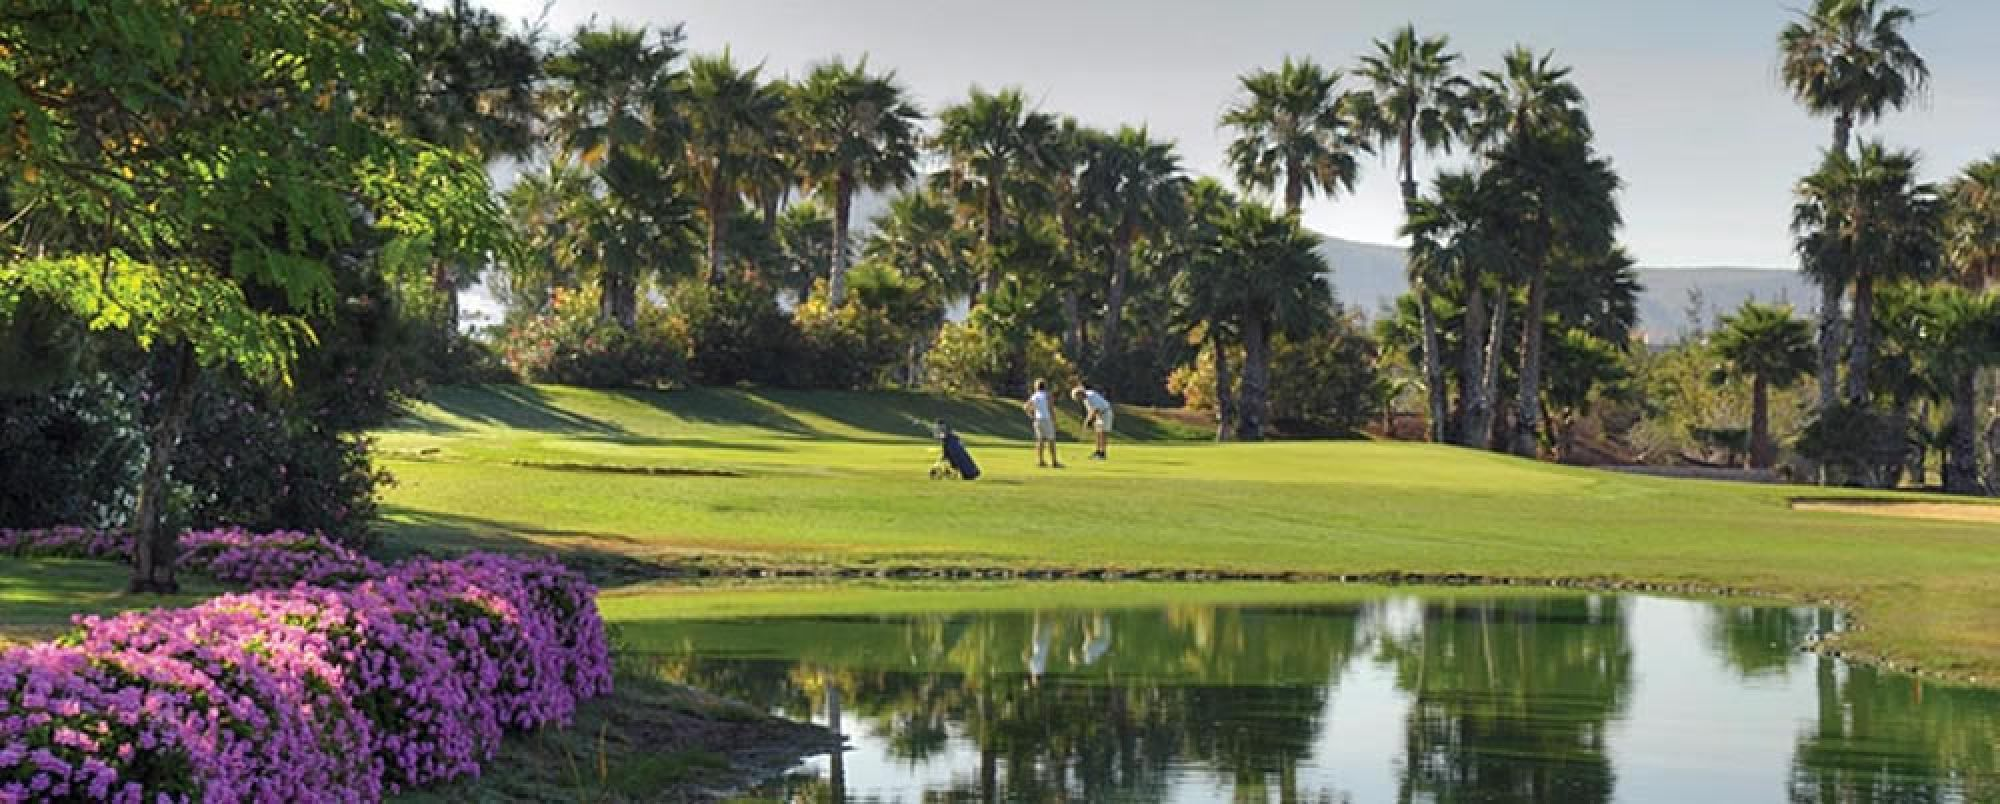 The Golf Las Americas's picturesque golf course in stunning Tenerife.